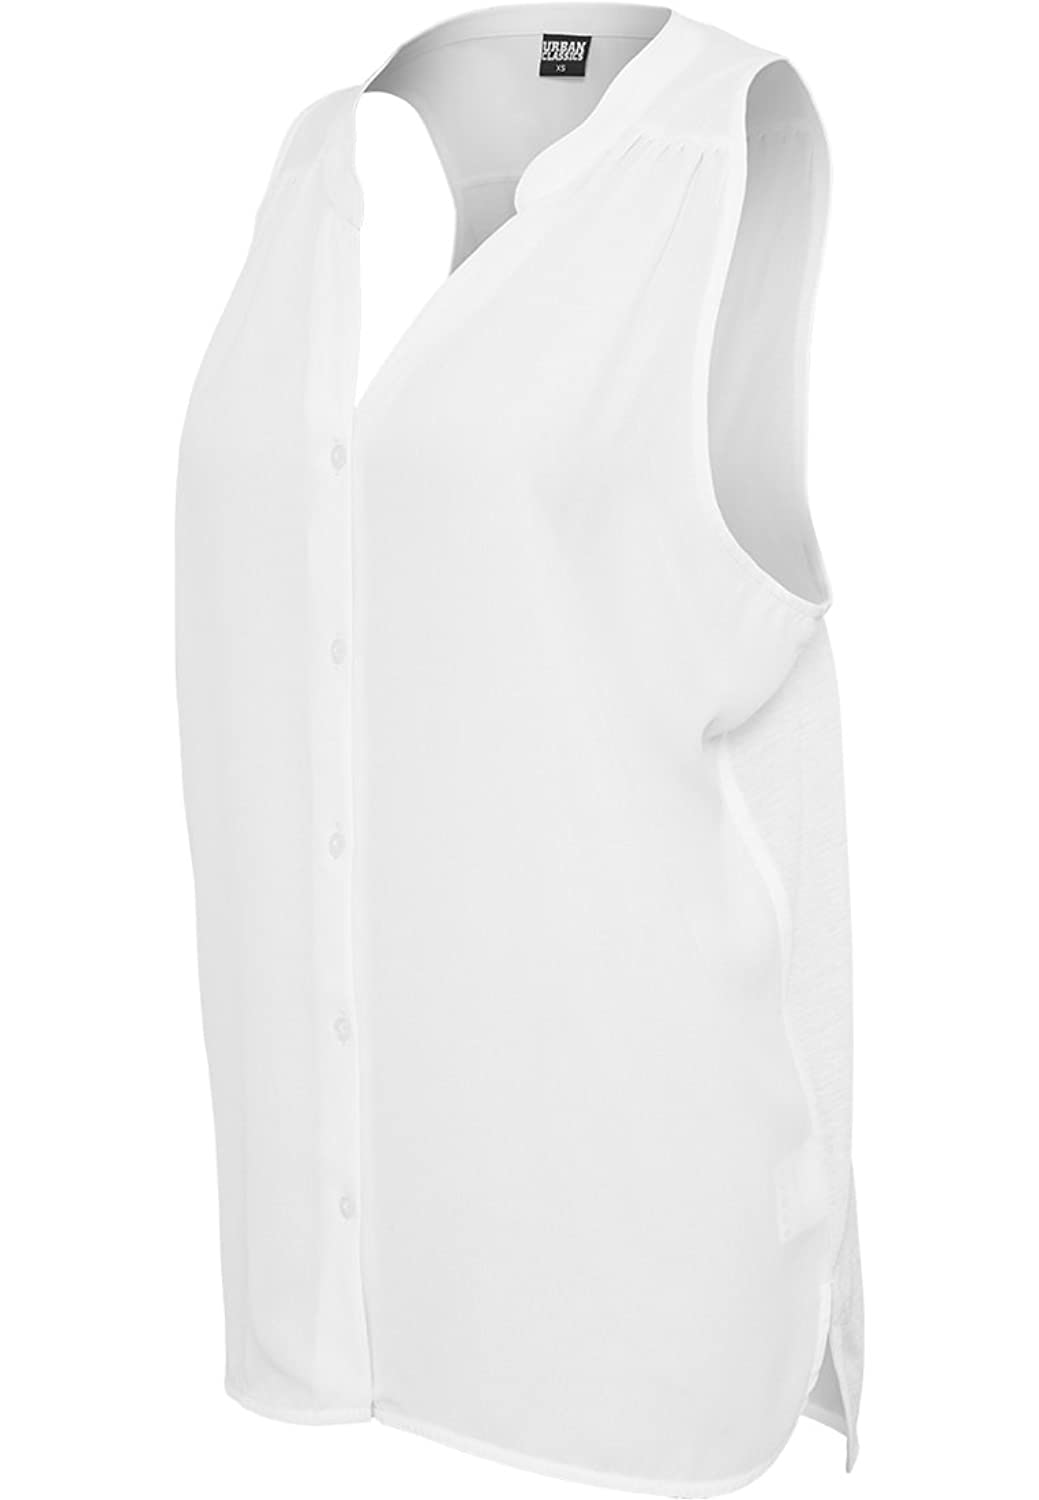 URBAN CLASSICS - Ladies Sleeveless Chiffon Blouse (offwhite)